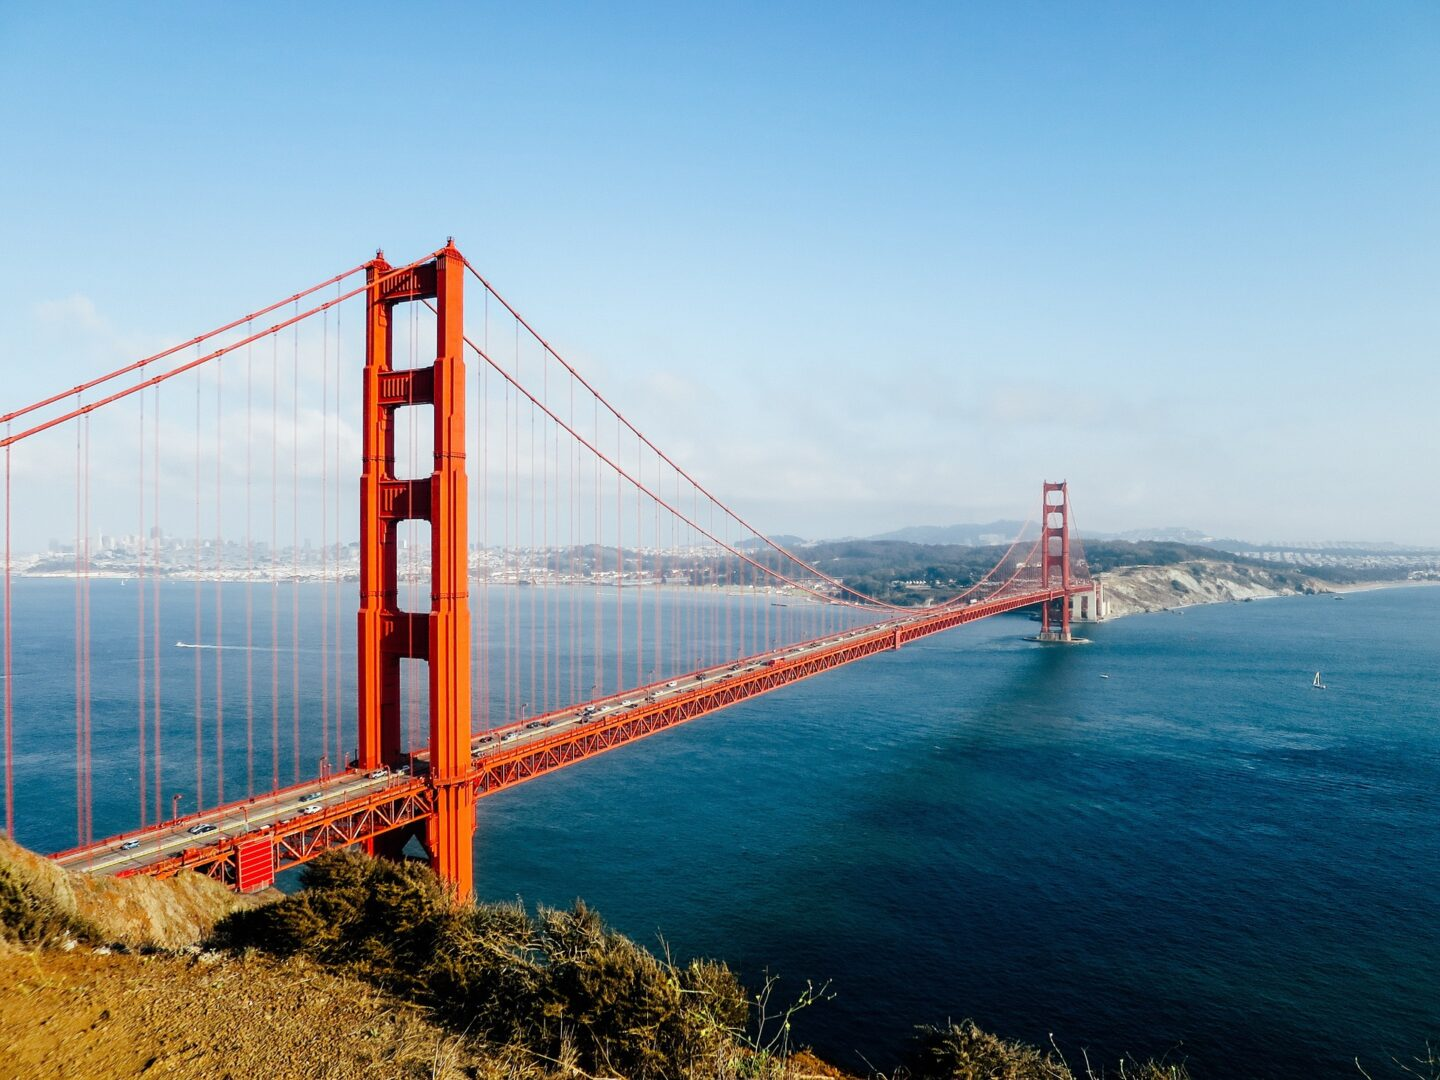 USA: Three Places to Have an Adventure in the Golden State